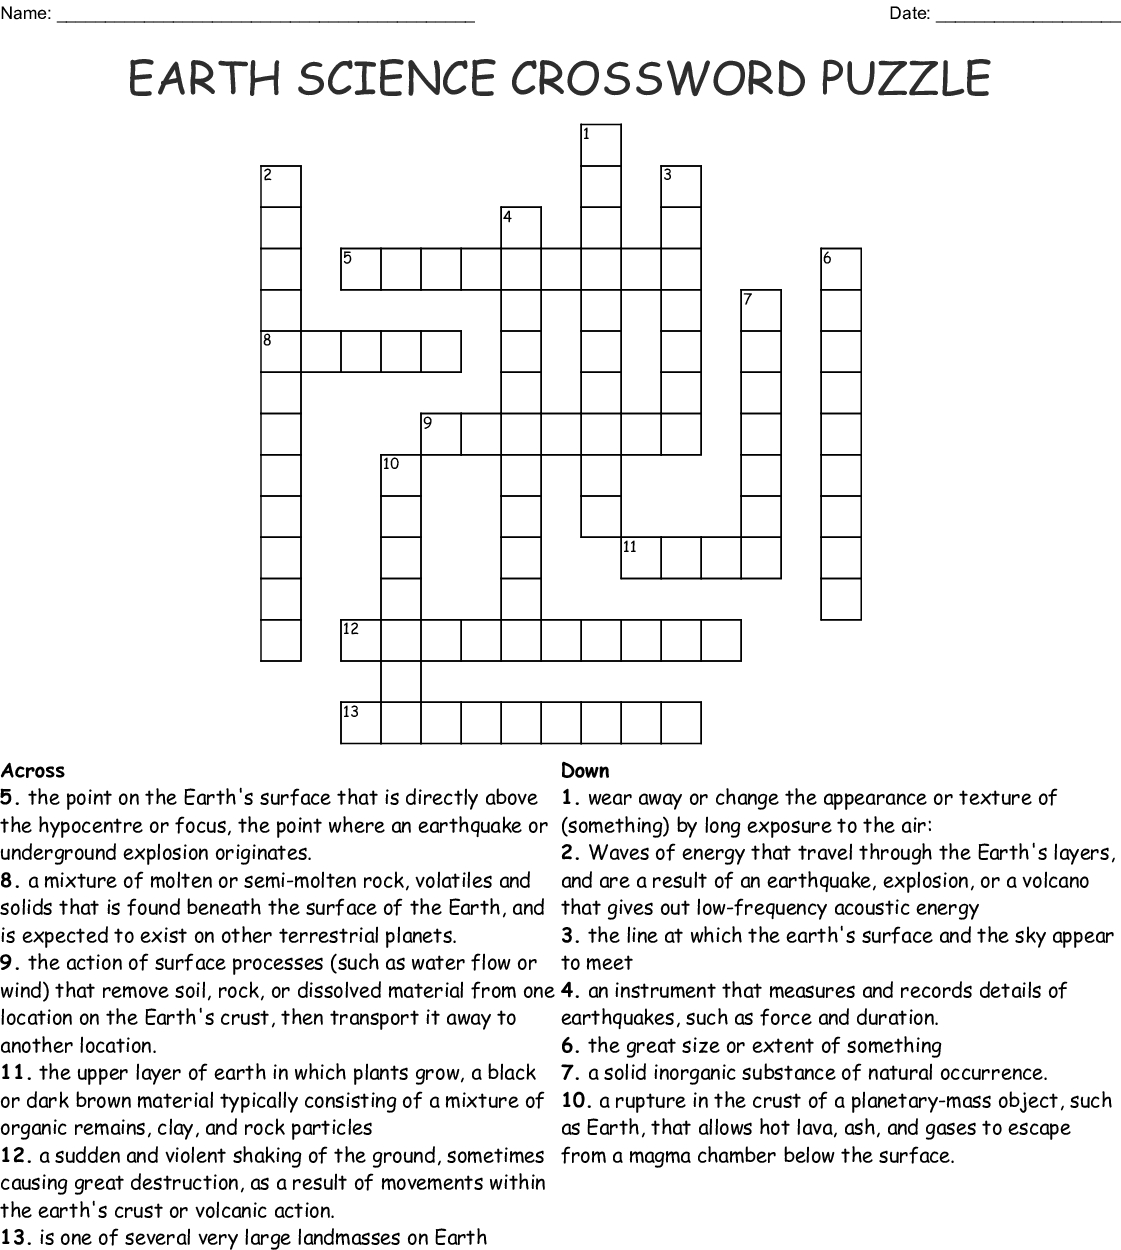 Earth Science Crossword Puzzle - Wordmint - Free Printable Science Crossword Puzzles